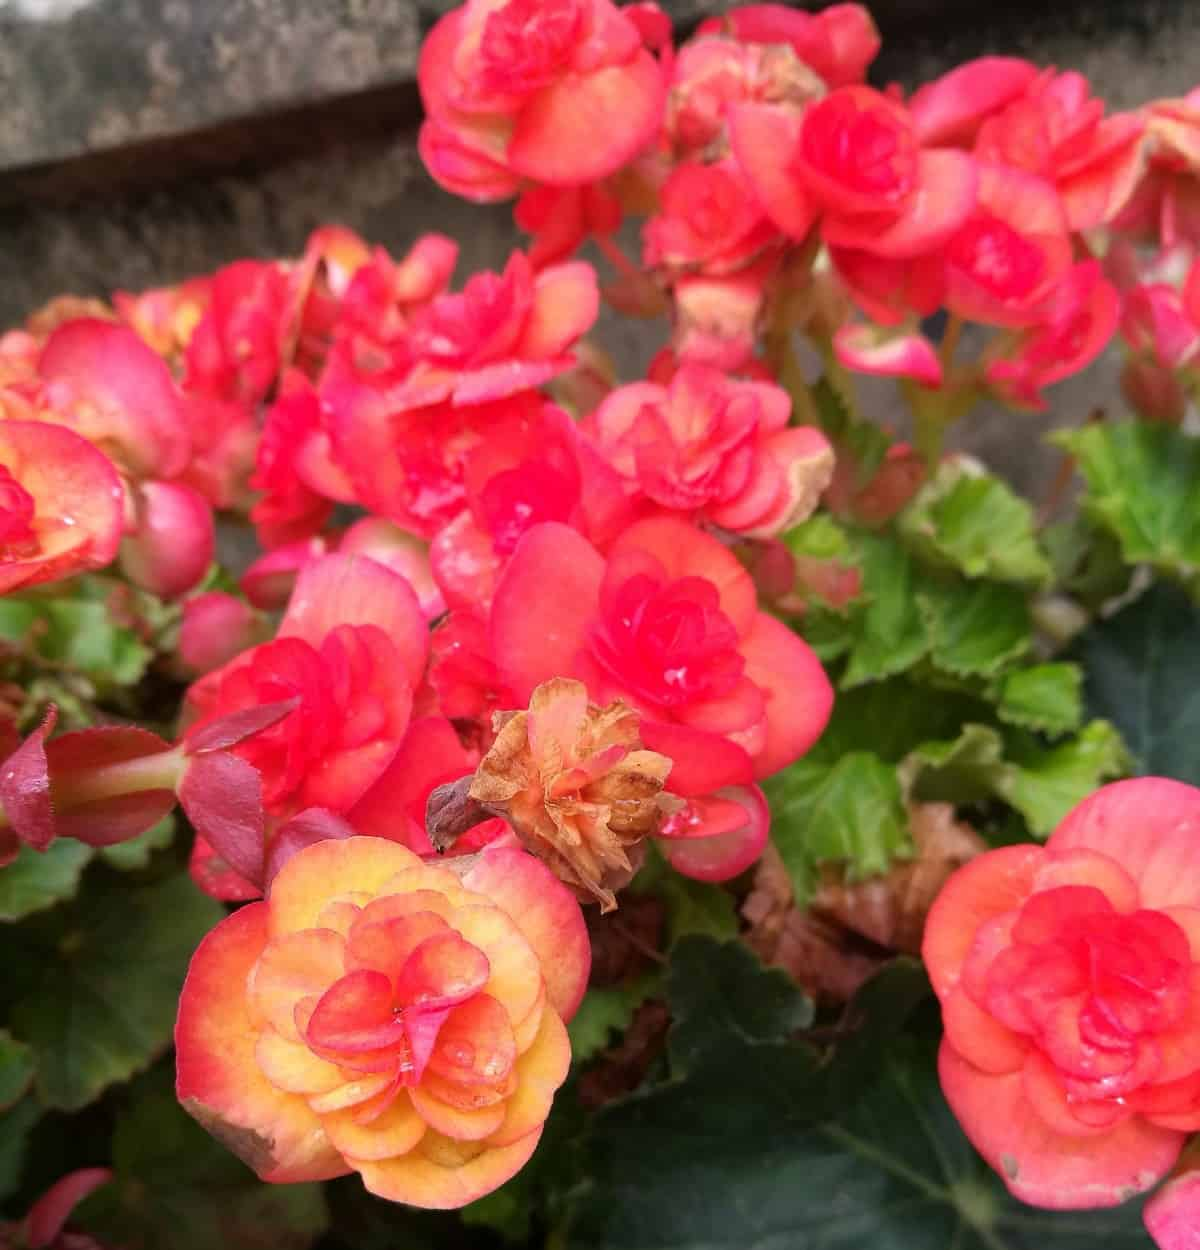 Begonias come in many different beautiful colors.